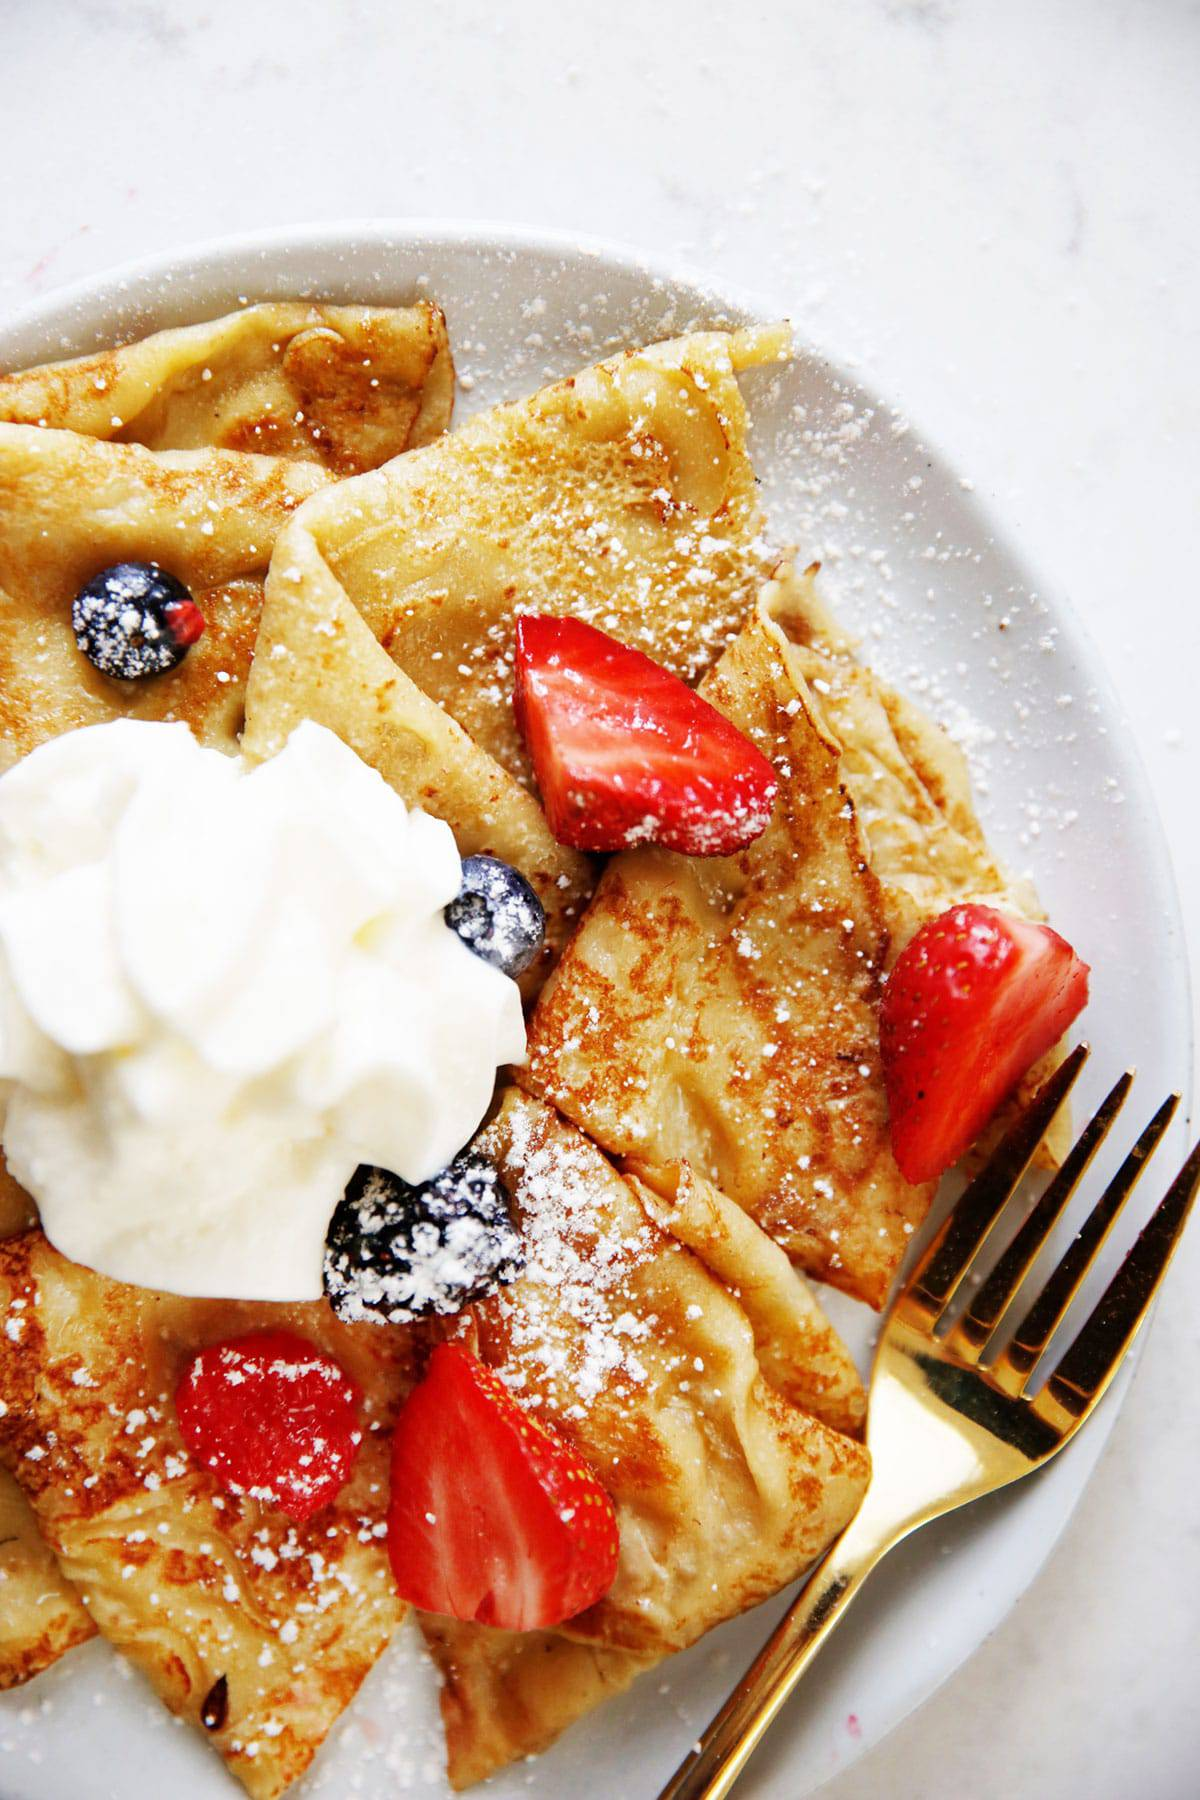 Gluten-free crepes with powdered sugar, fruit and whipped cream on a plate.